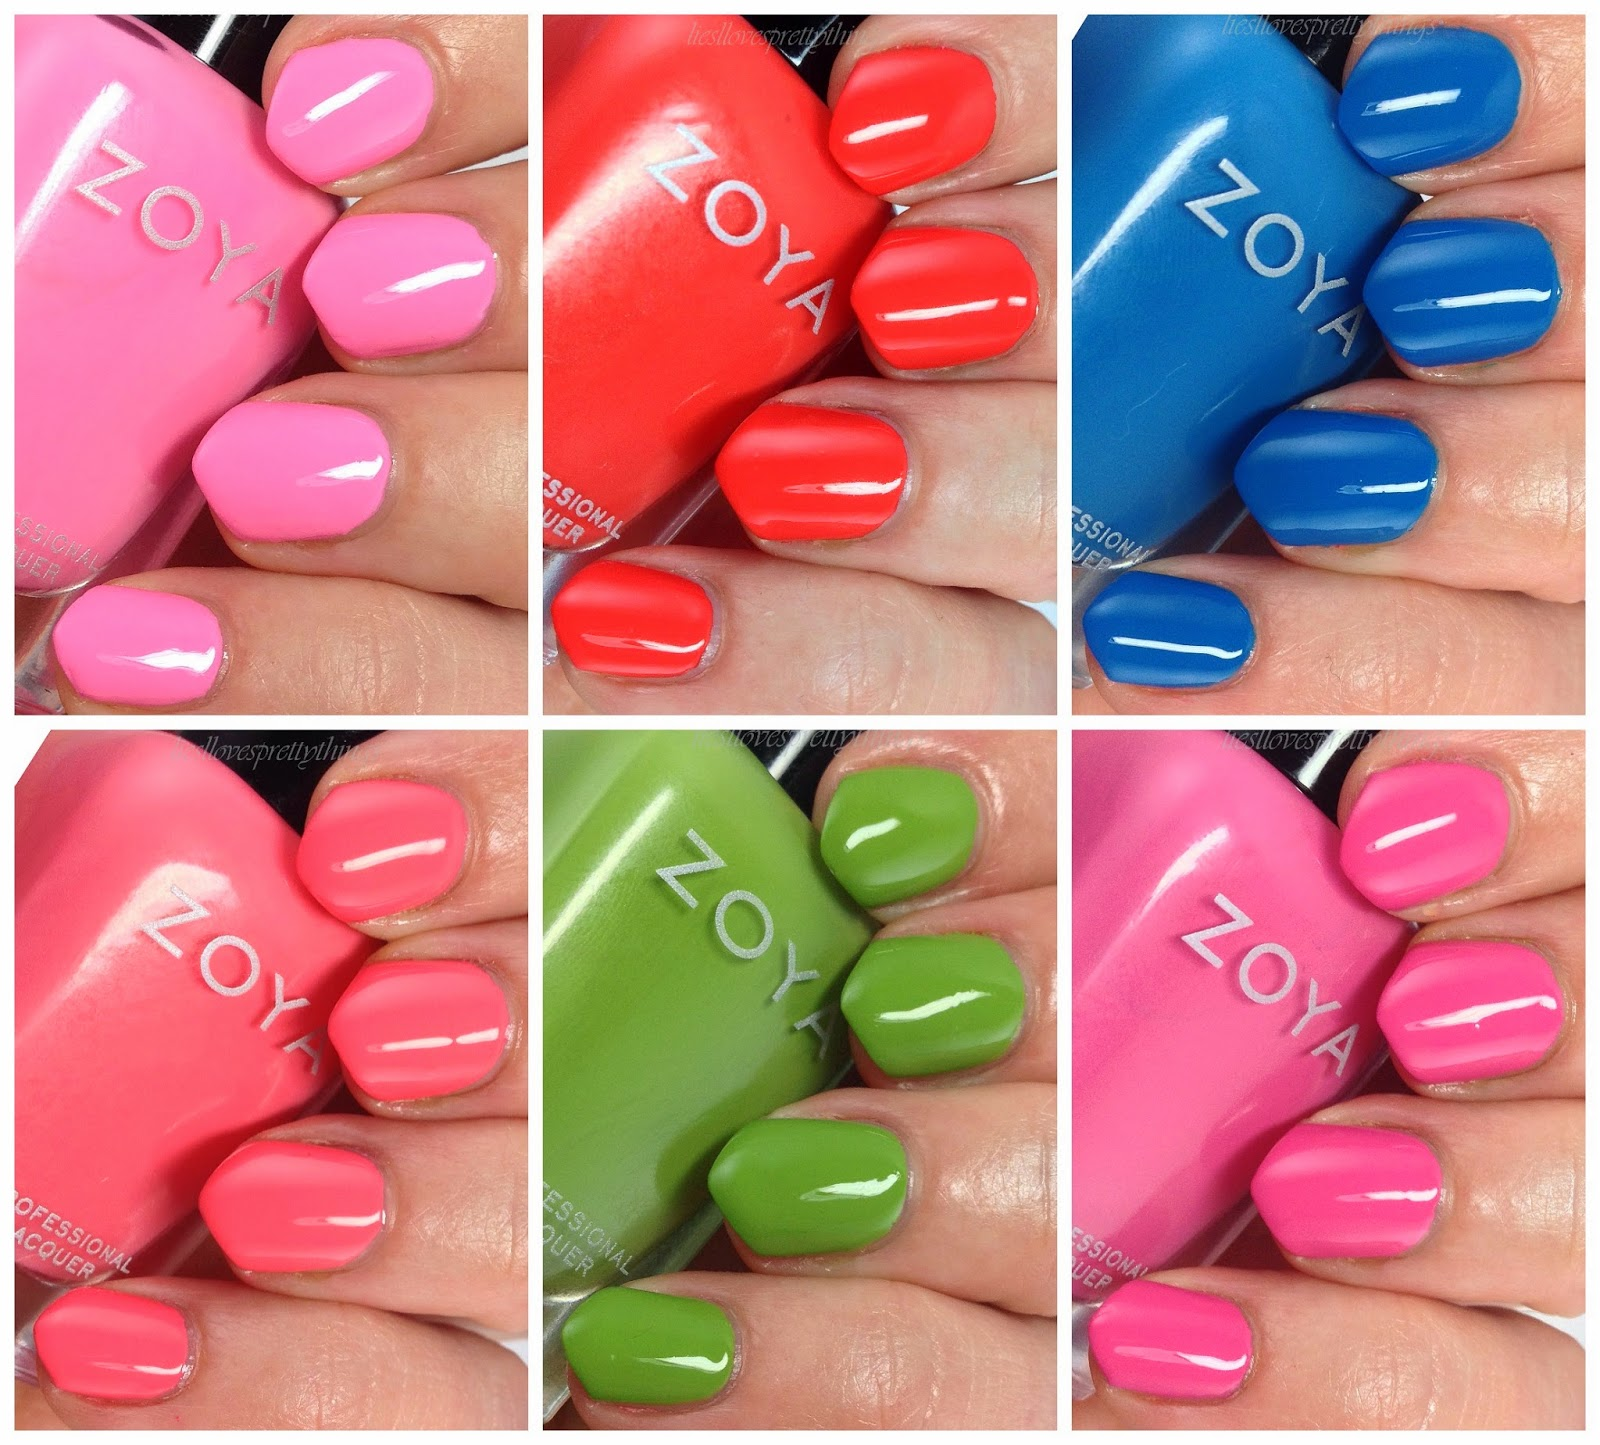 Zoya Tickled Collection Summer 2014 swatches and review